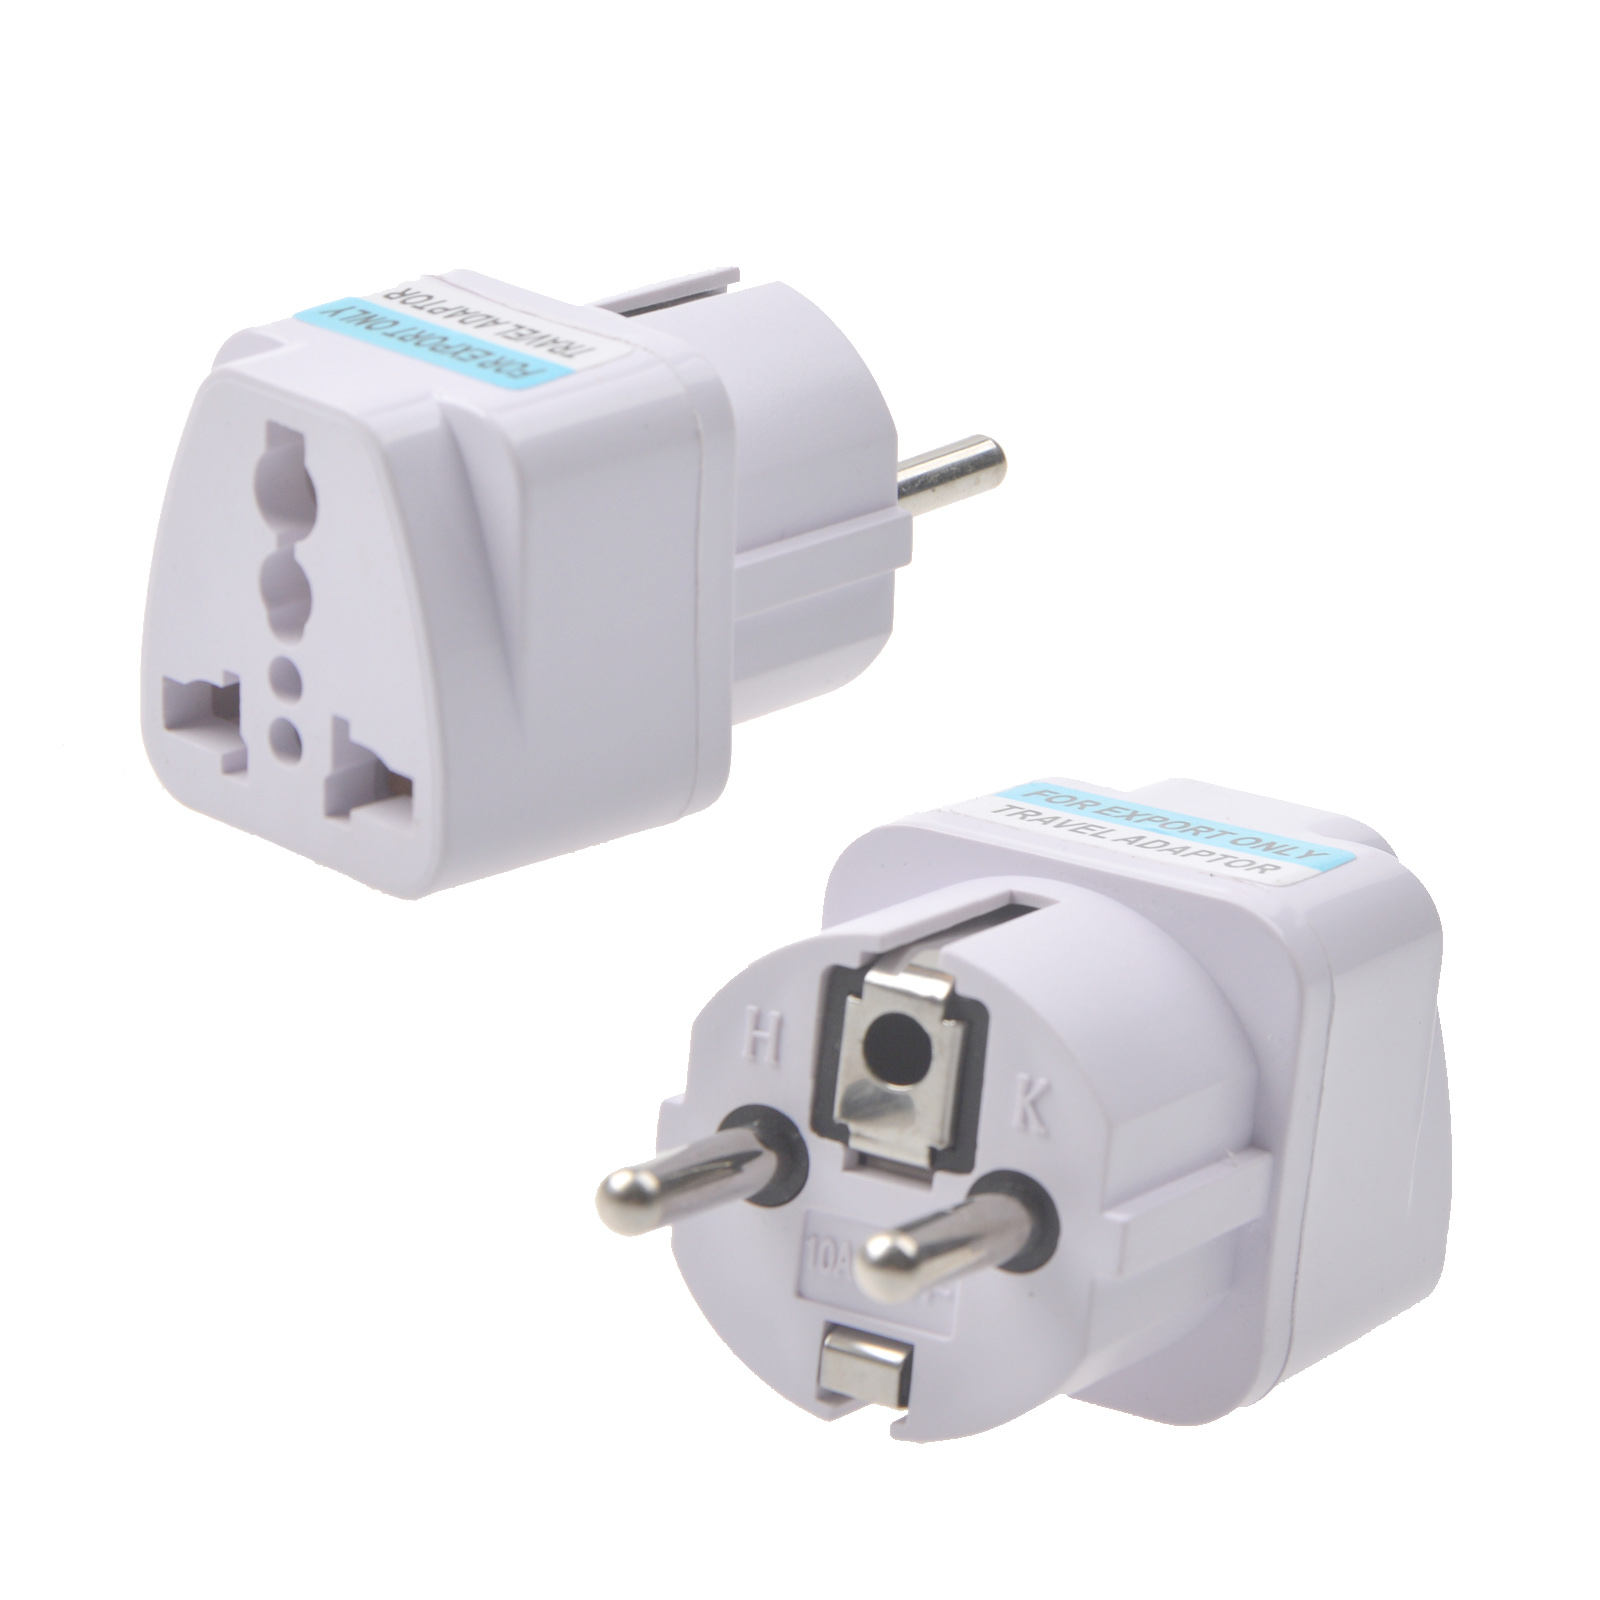 Universal EU Plug US Adapter AU Adapter UK Adapter Travelling Power Adapter 100-250V 10A